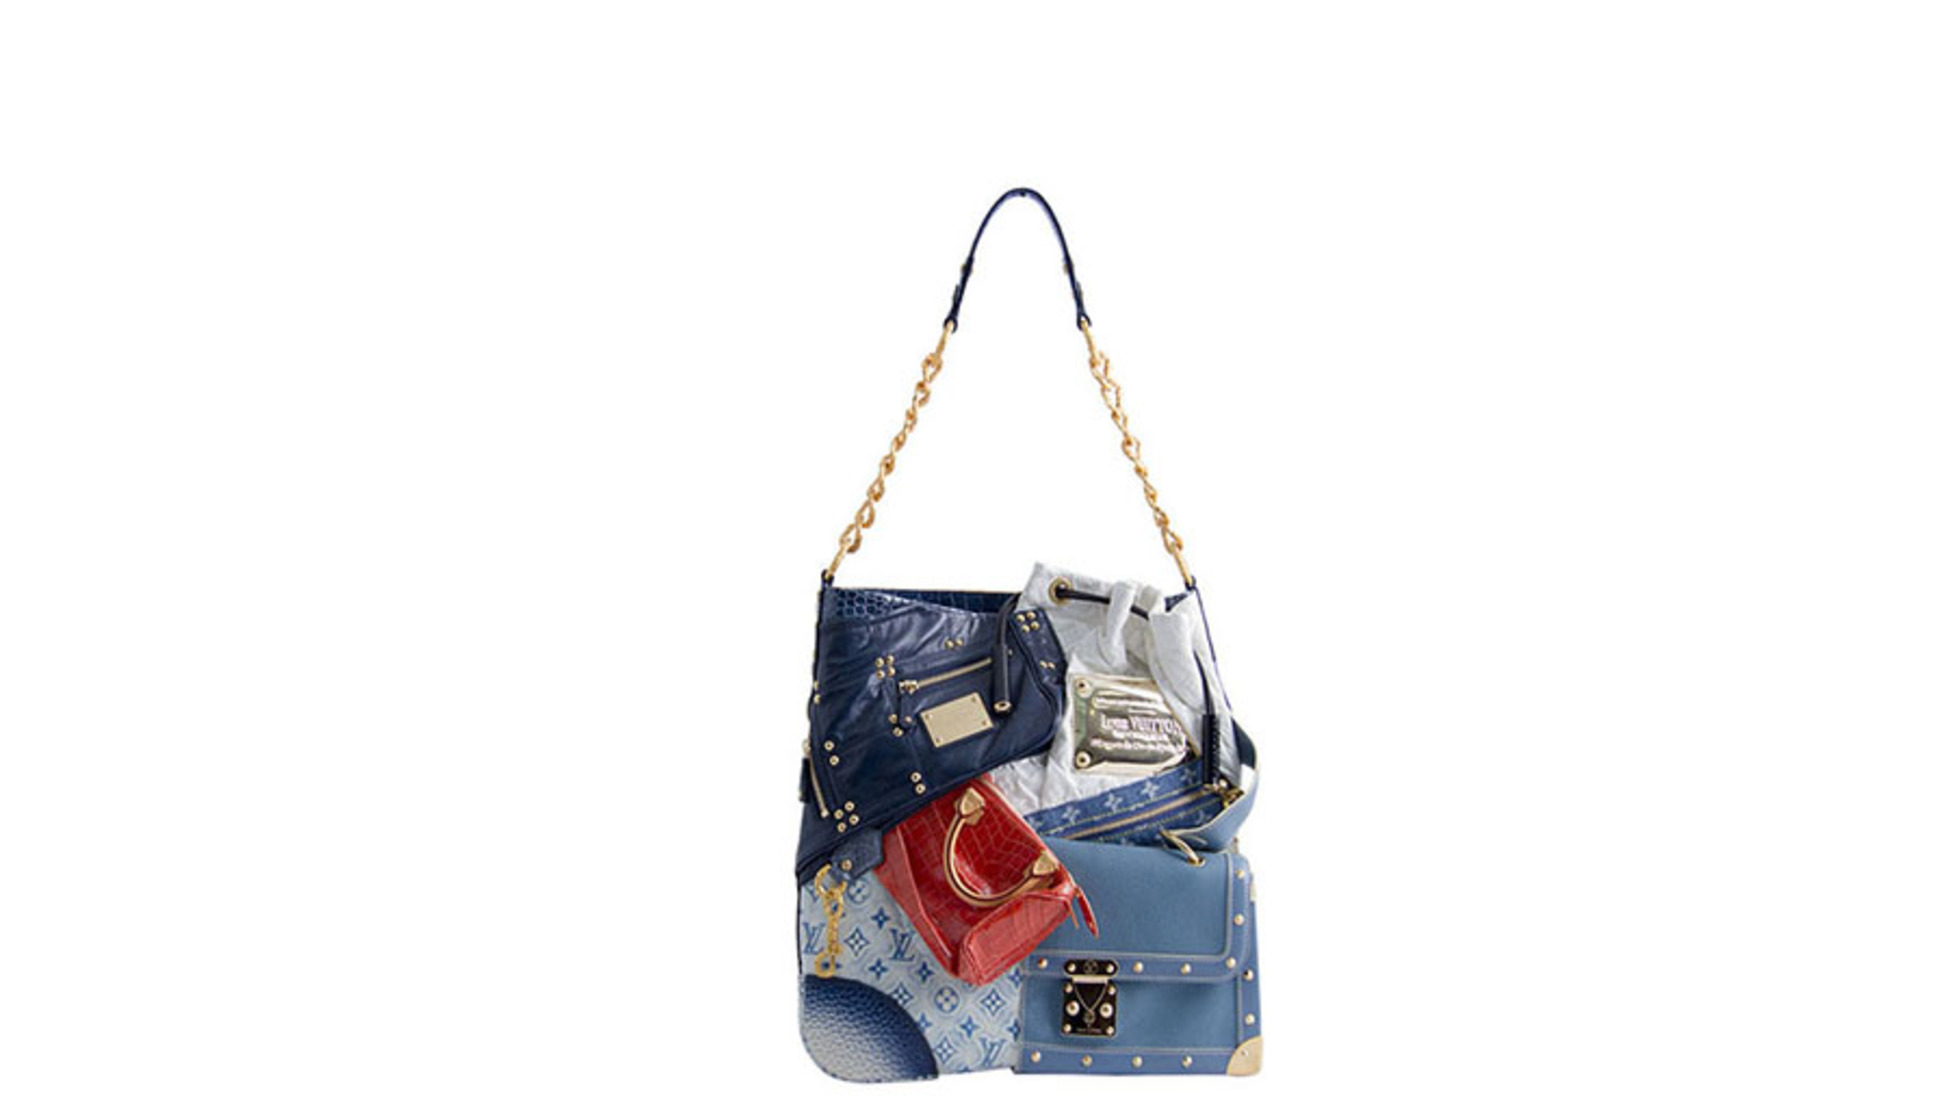 2170403e4cc7 In order to keep up with luxury brands like Hermès and Chanel